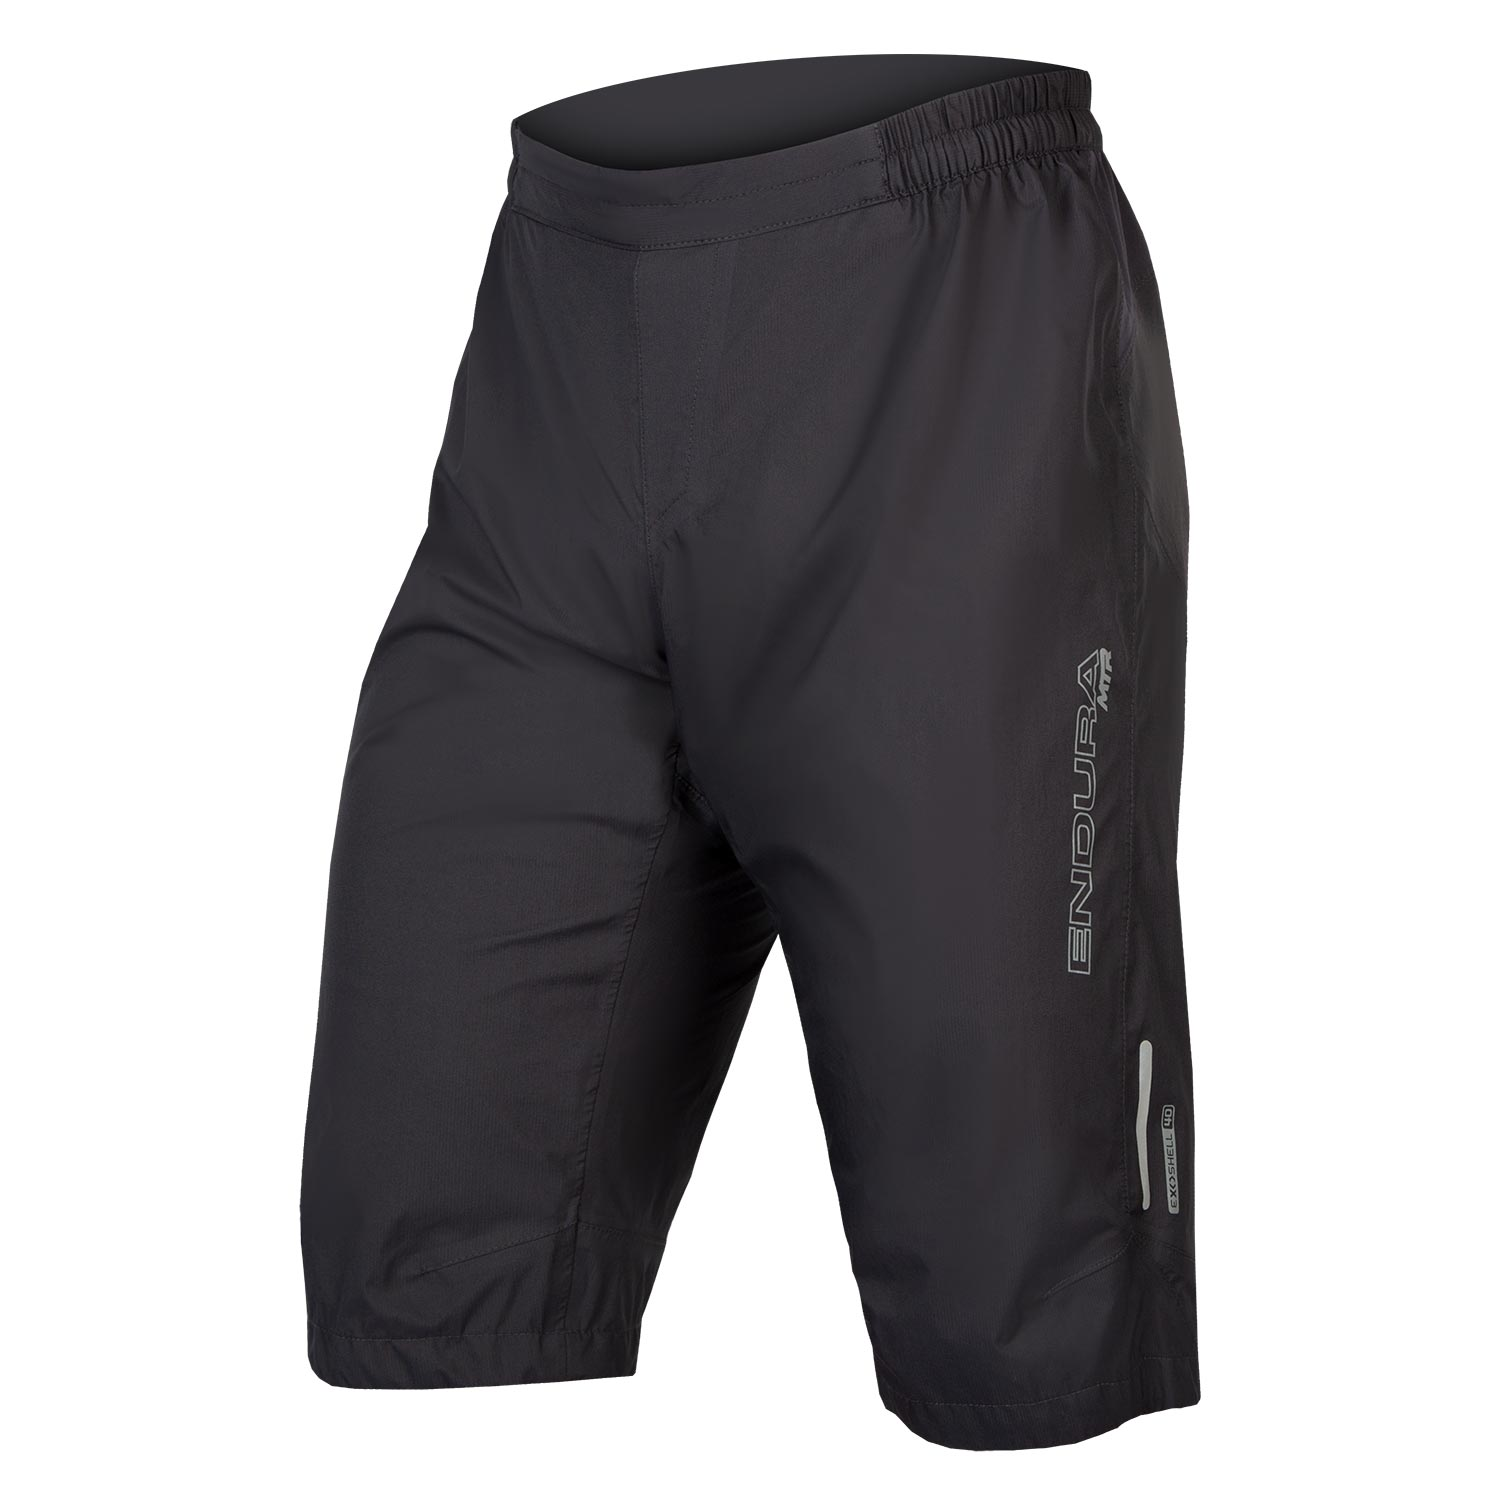 MTR Waterproof Short